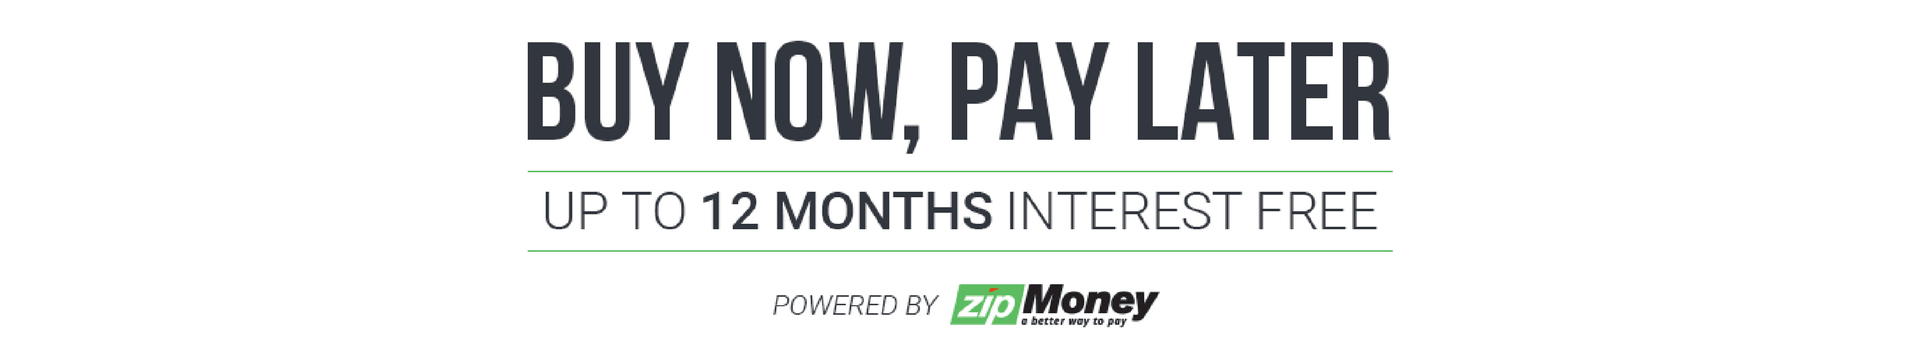 ZipMoney Dental Payment Plan